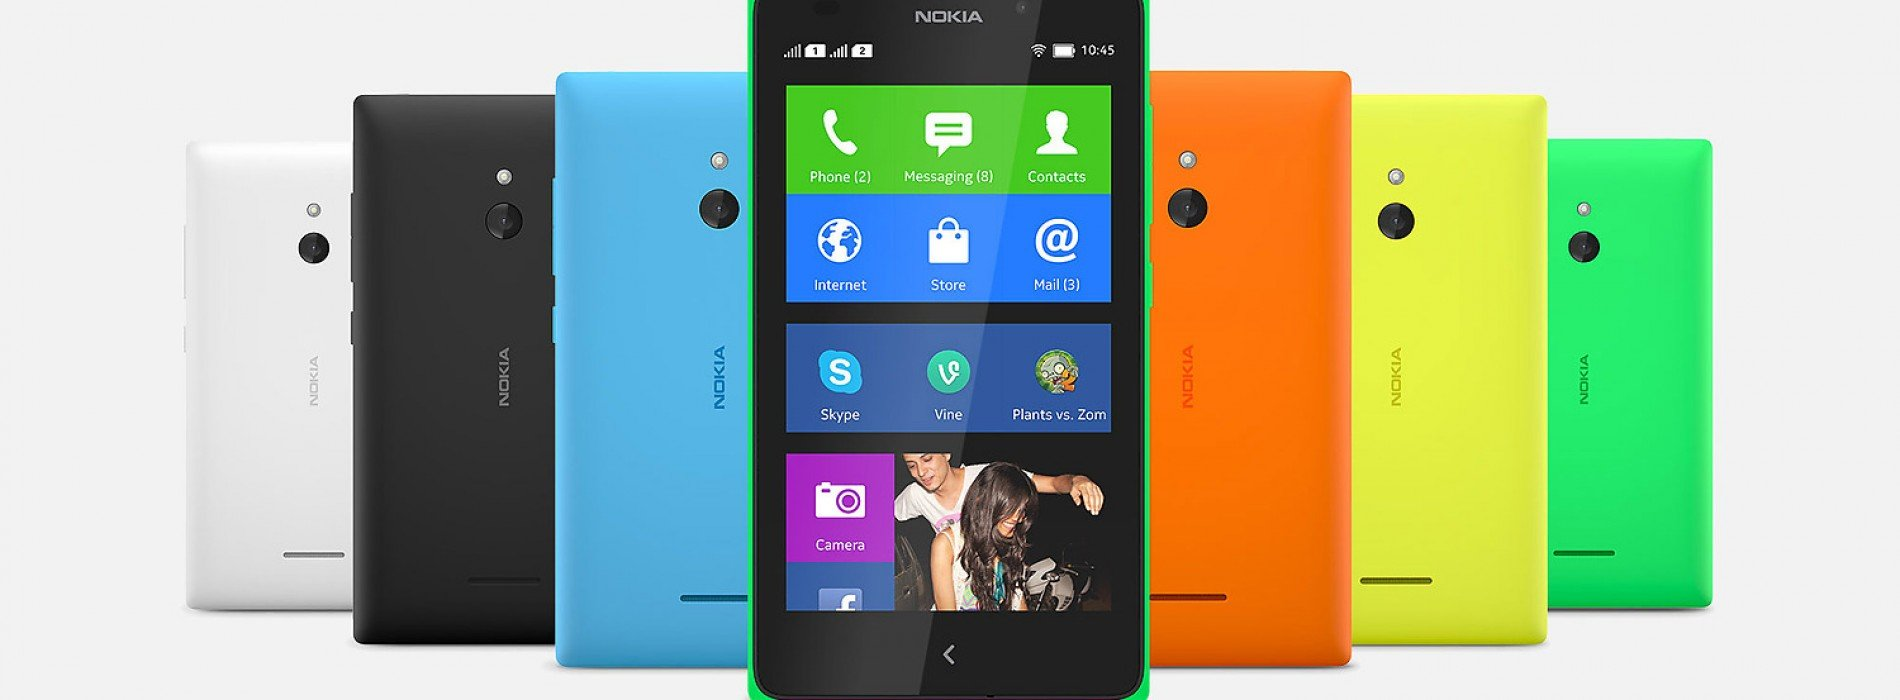 Nokia X gets rooted bringing custom ROM and Google Services